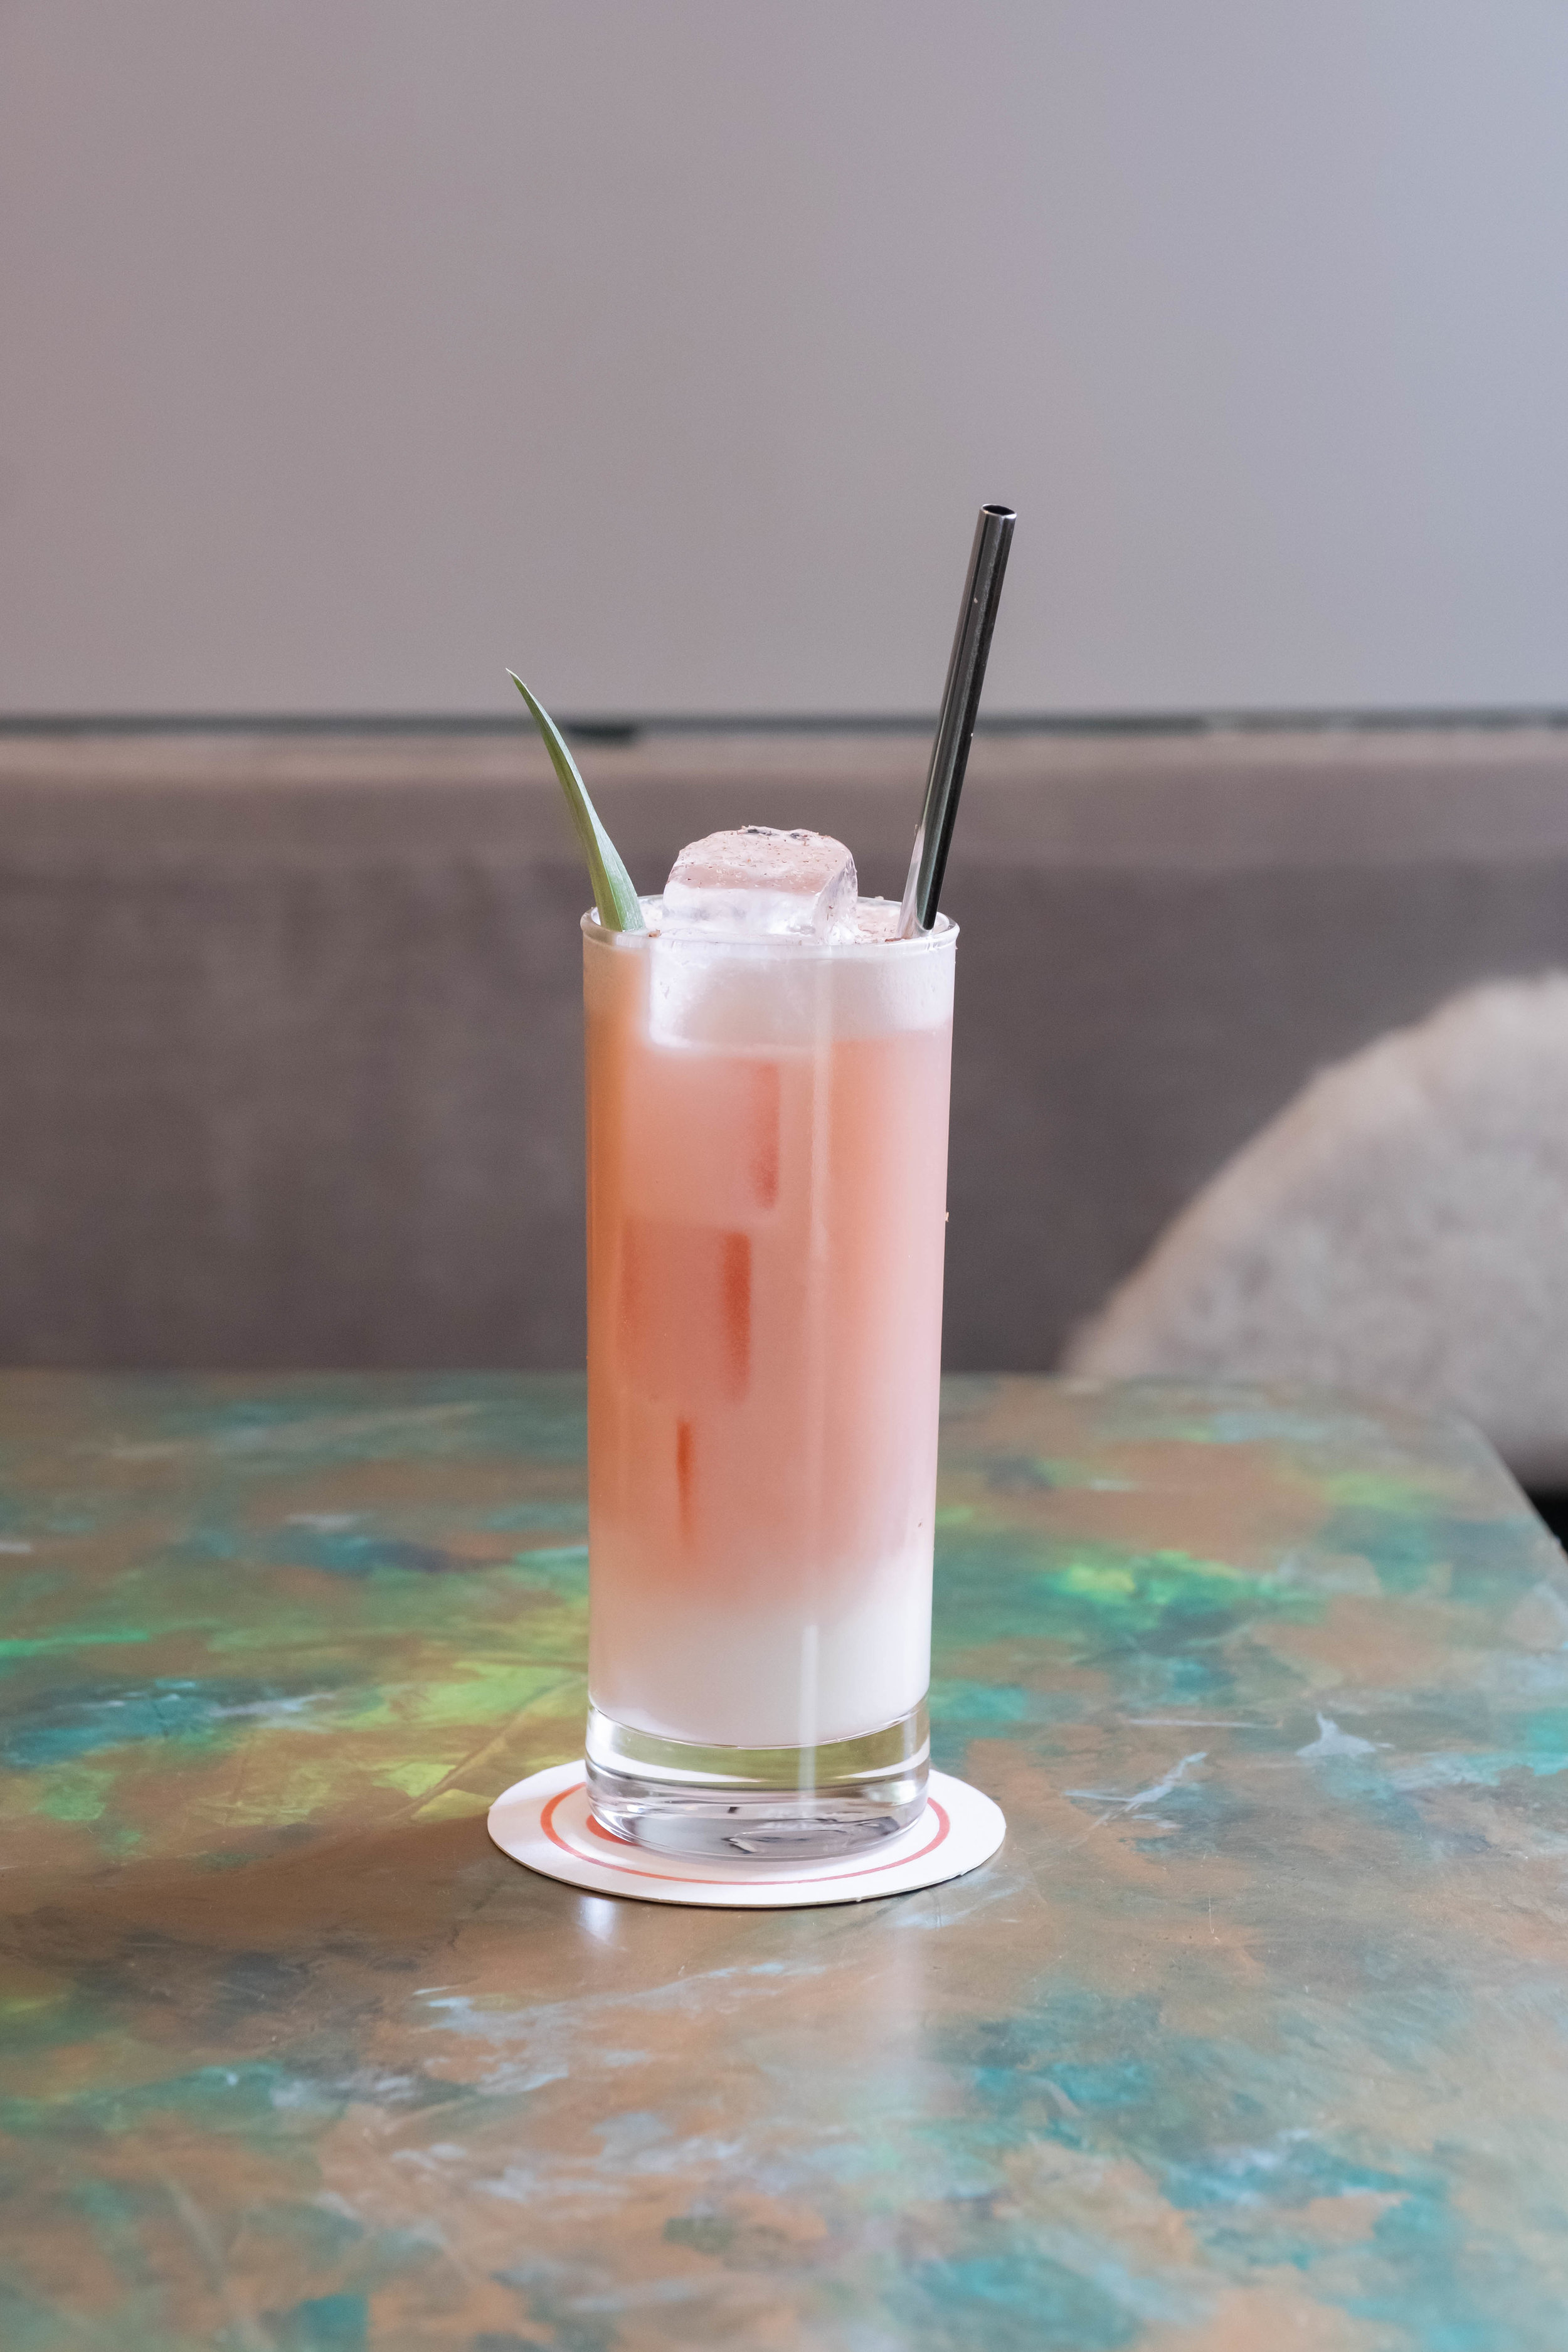 Pretty in pink, The Coconut, which is a sweet combination of pineapple, coconut milk, cream of coconut, San Pellegrino Aranciata Rosso and nutmeg.